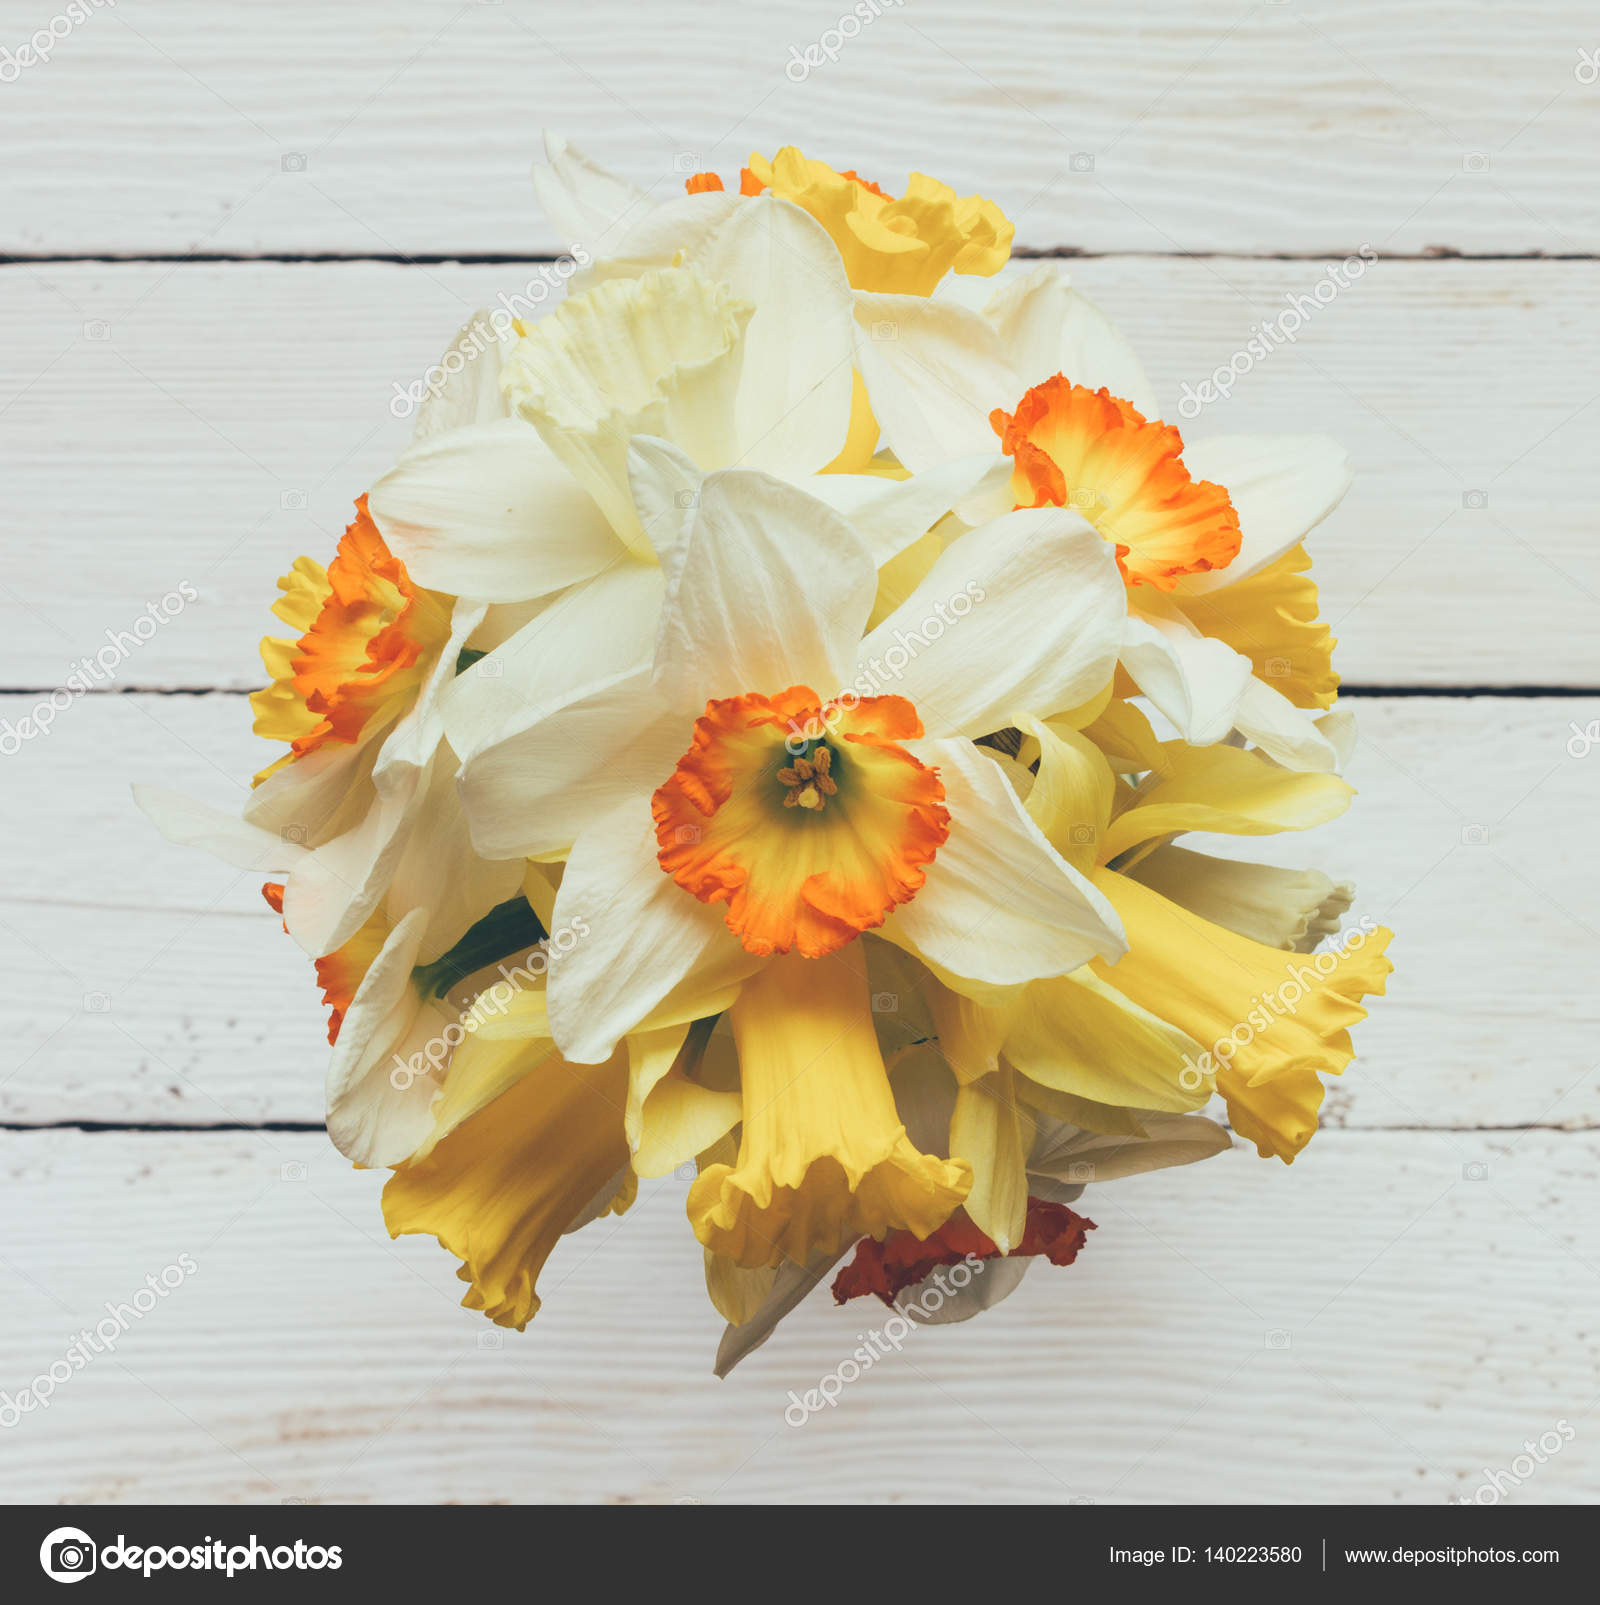 A Bouquet Of Fresh Flowers Narcissus On White Wooden Background Top